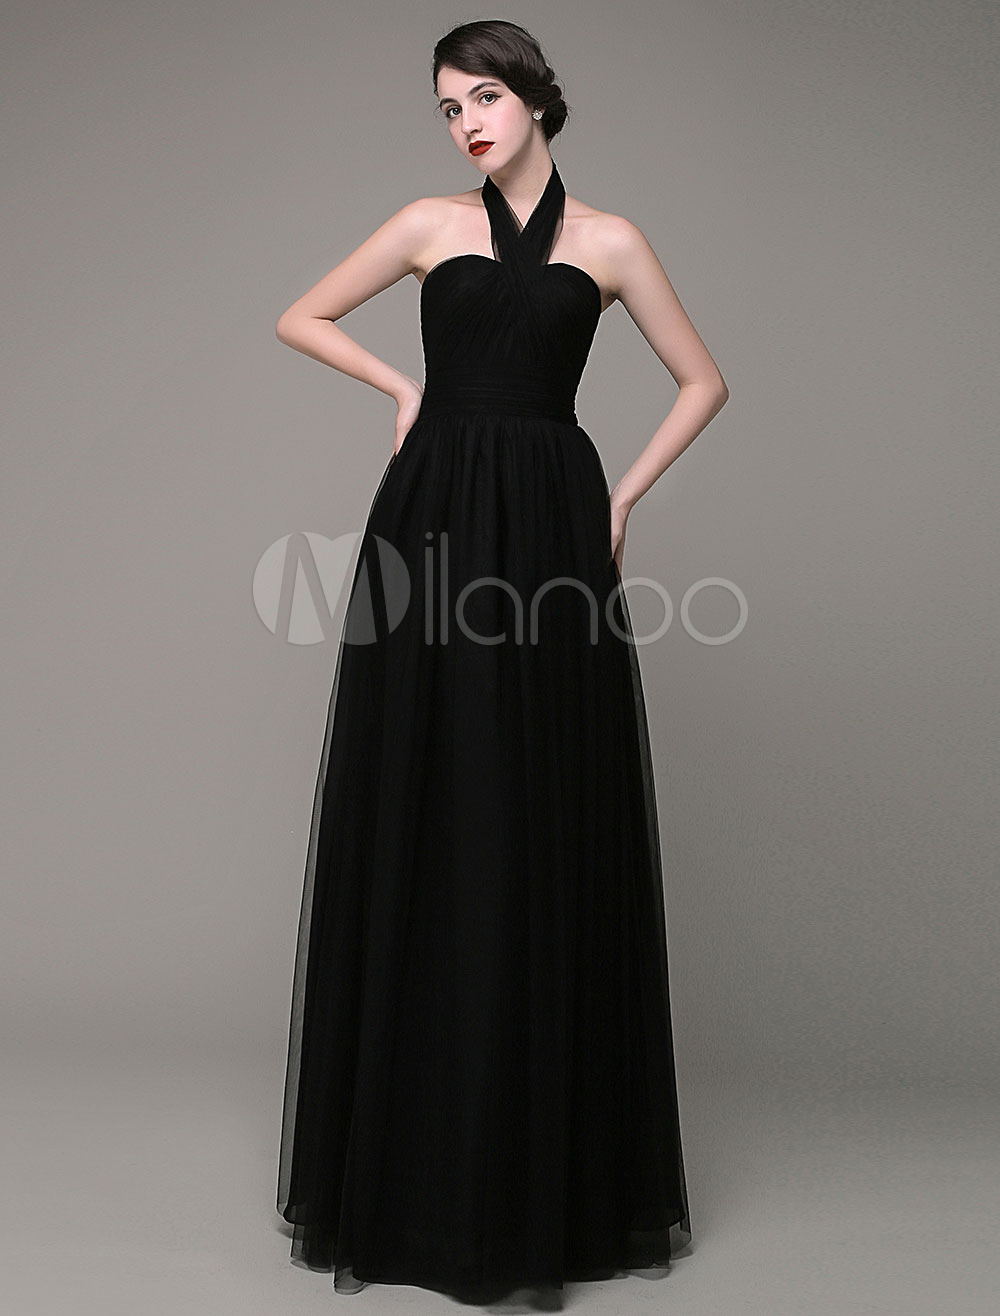 Black Evening Dress Halter Neckline A-line Tulle Pleated Floor Length Party dress Milanoo